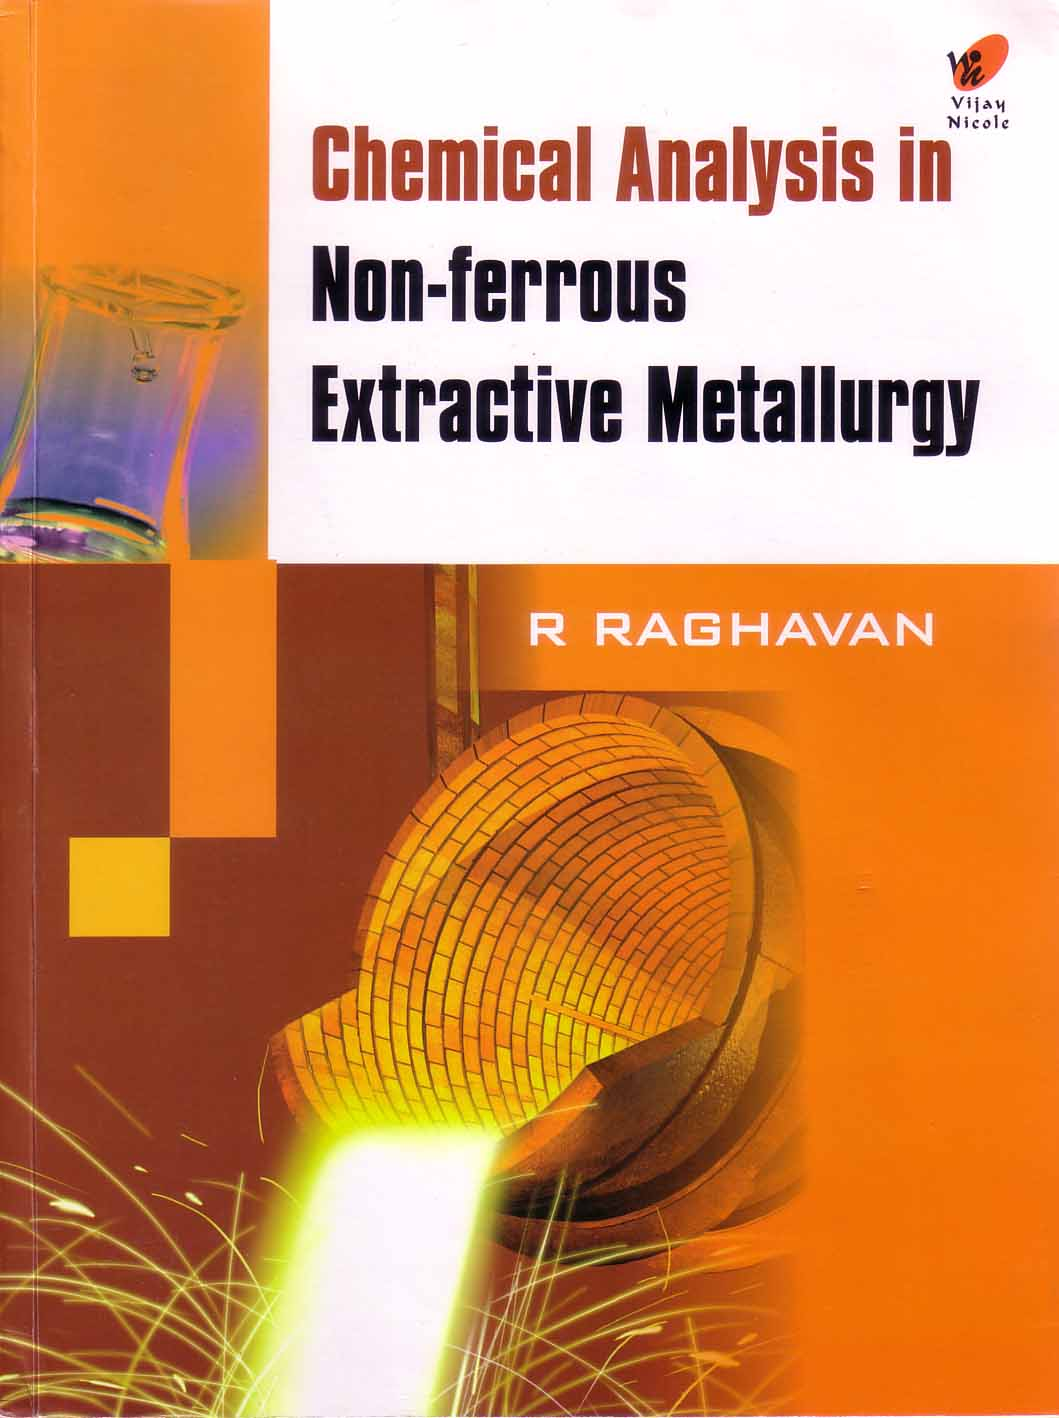 MEI Blog: Book Review- Chemical Analysis in Non-ferrous ...